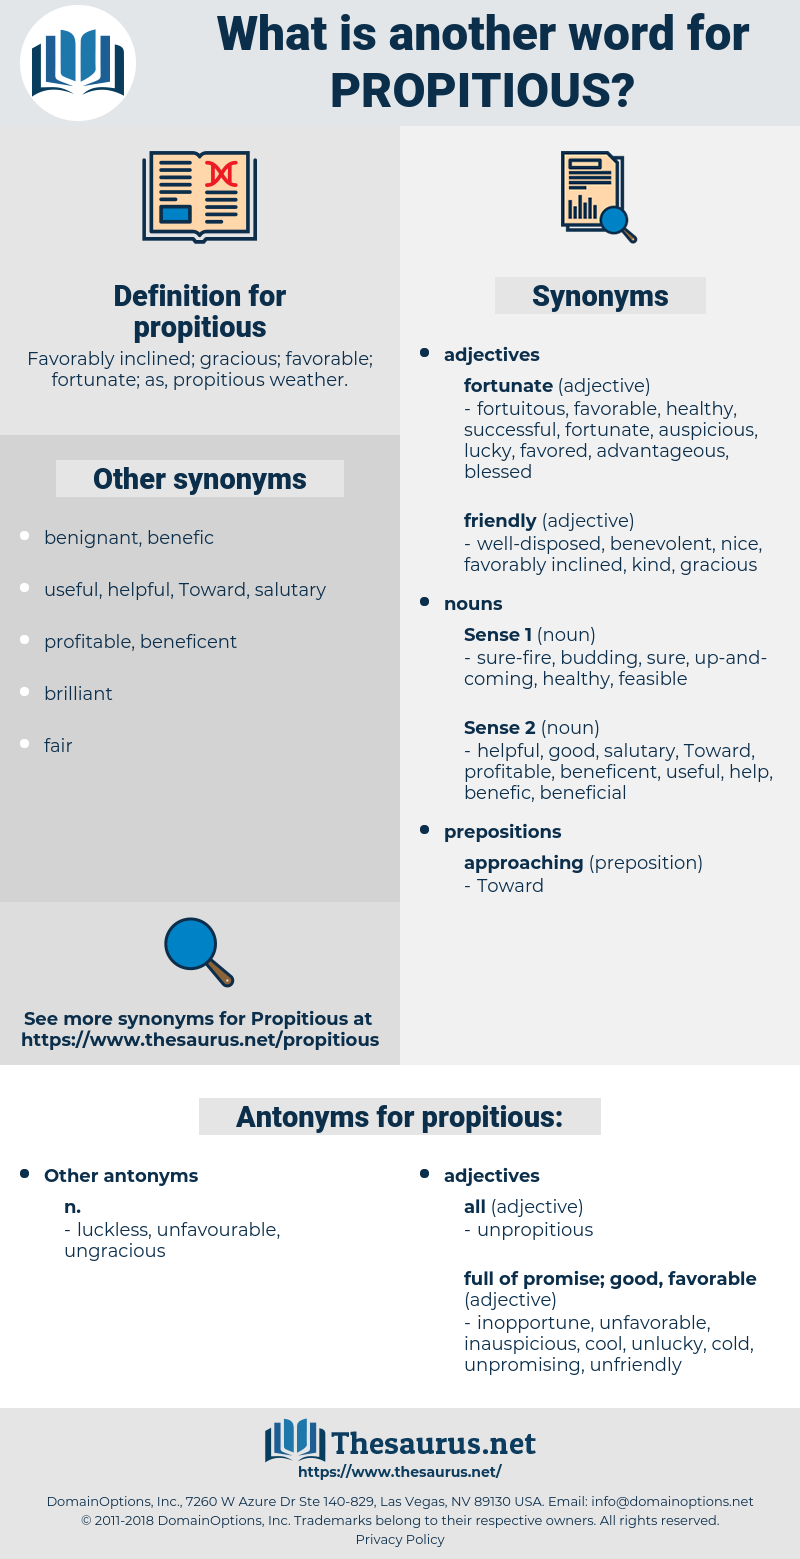 propitious, synonym propitious, another word for propitious, words like propitious, thesaurus propitious